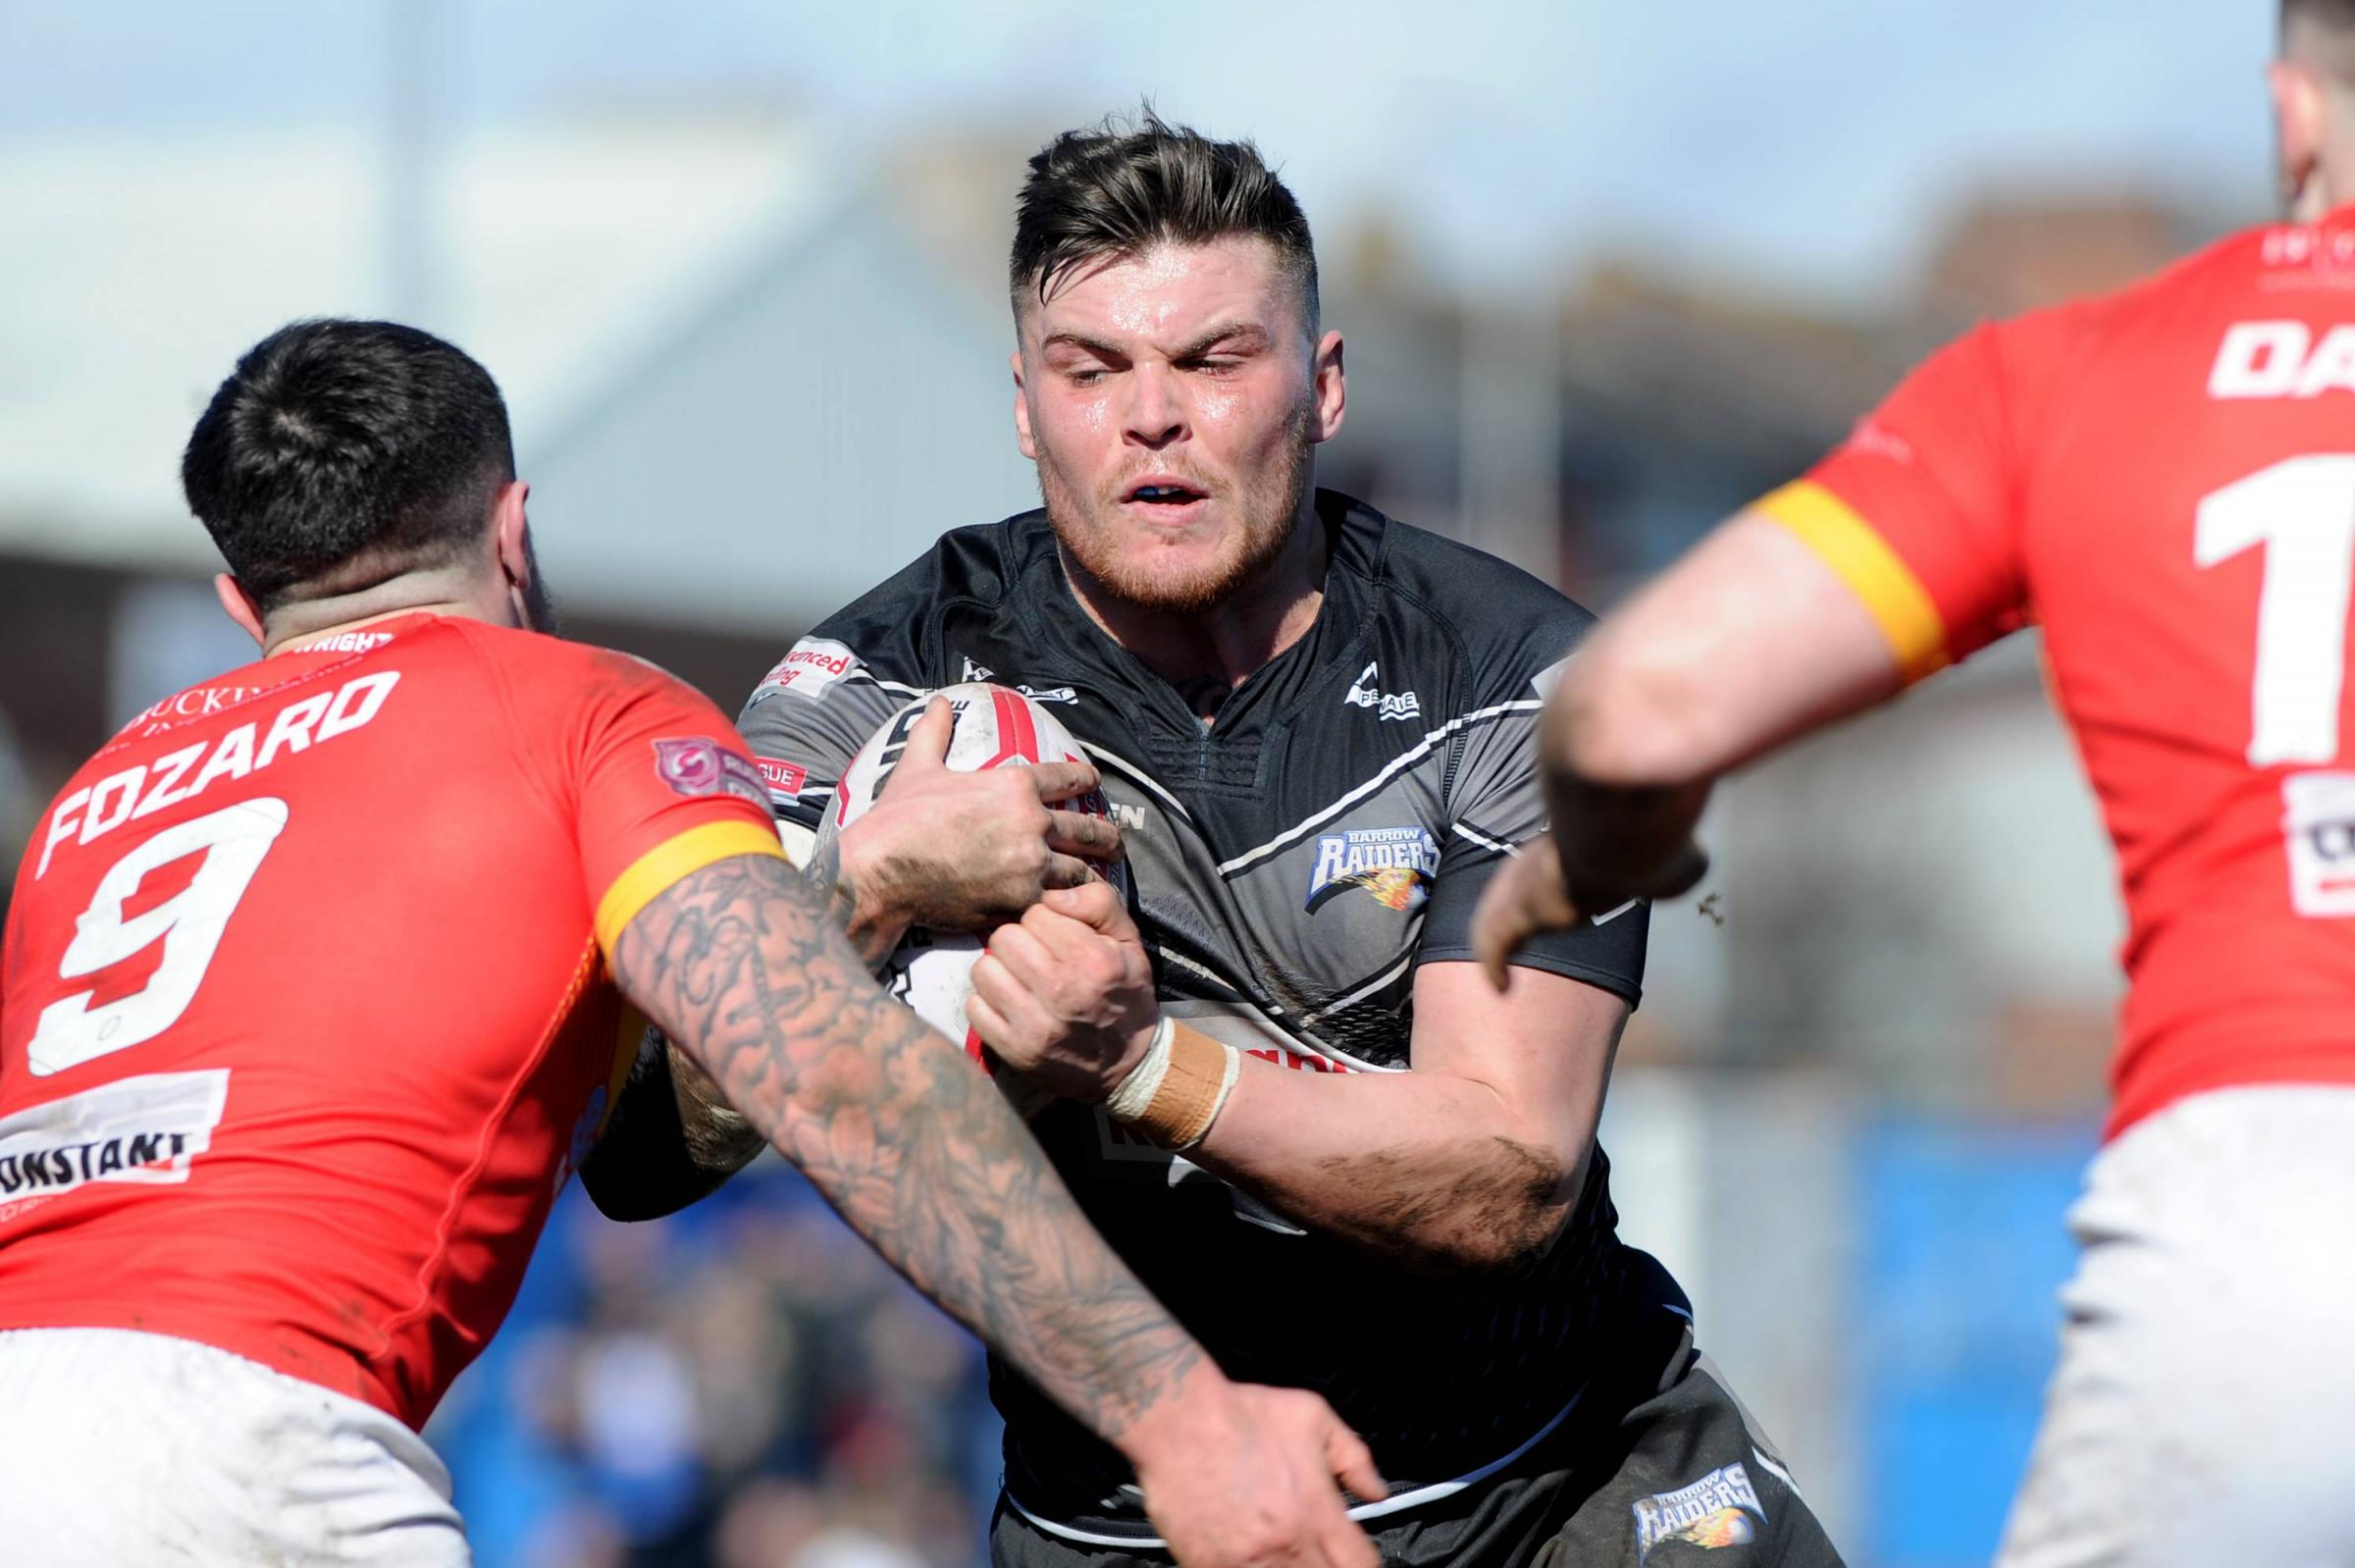 BARROW RAIDERS V SHEFFIELD EAGLES   Barrow Raiders vSheffield Eagles Pictured: Tom Walker, Craven Park, Barrow, Sunday 25th March 2018 LEANNE BOLGER